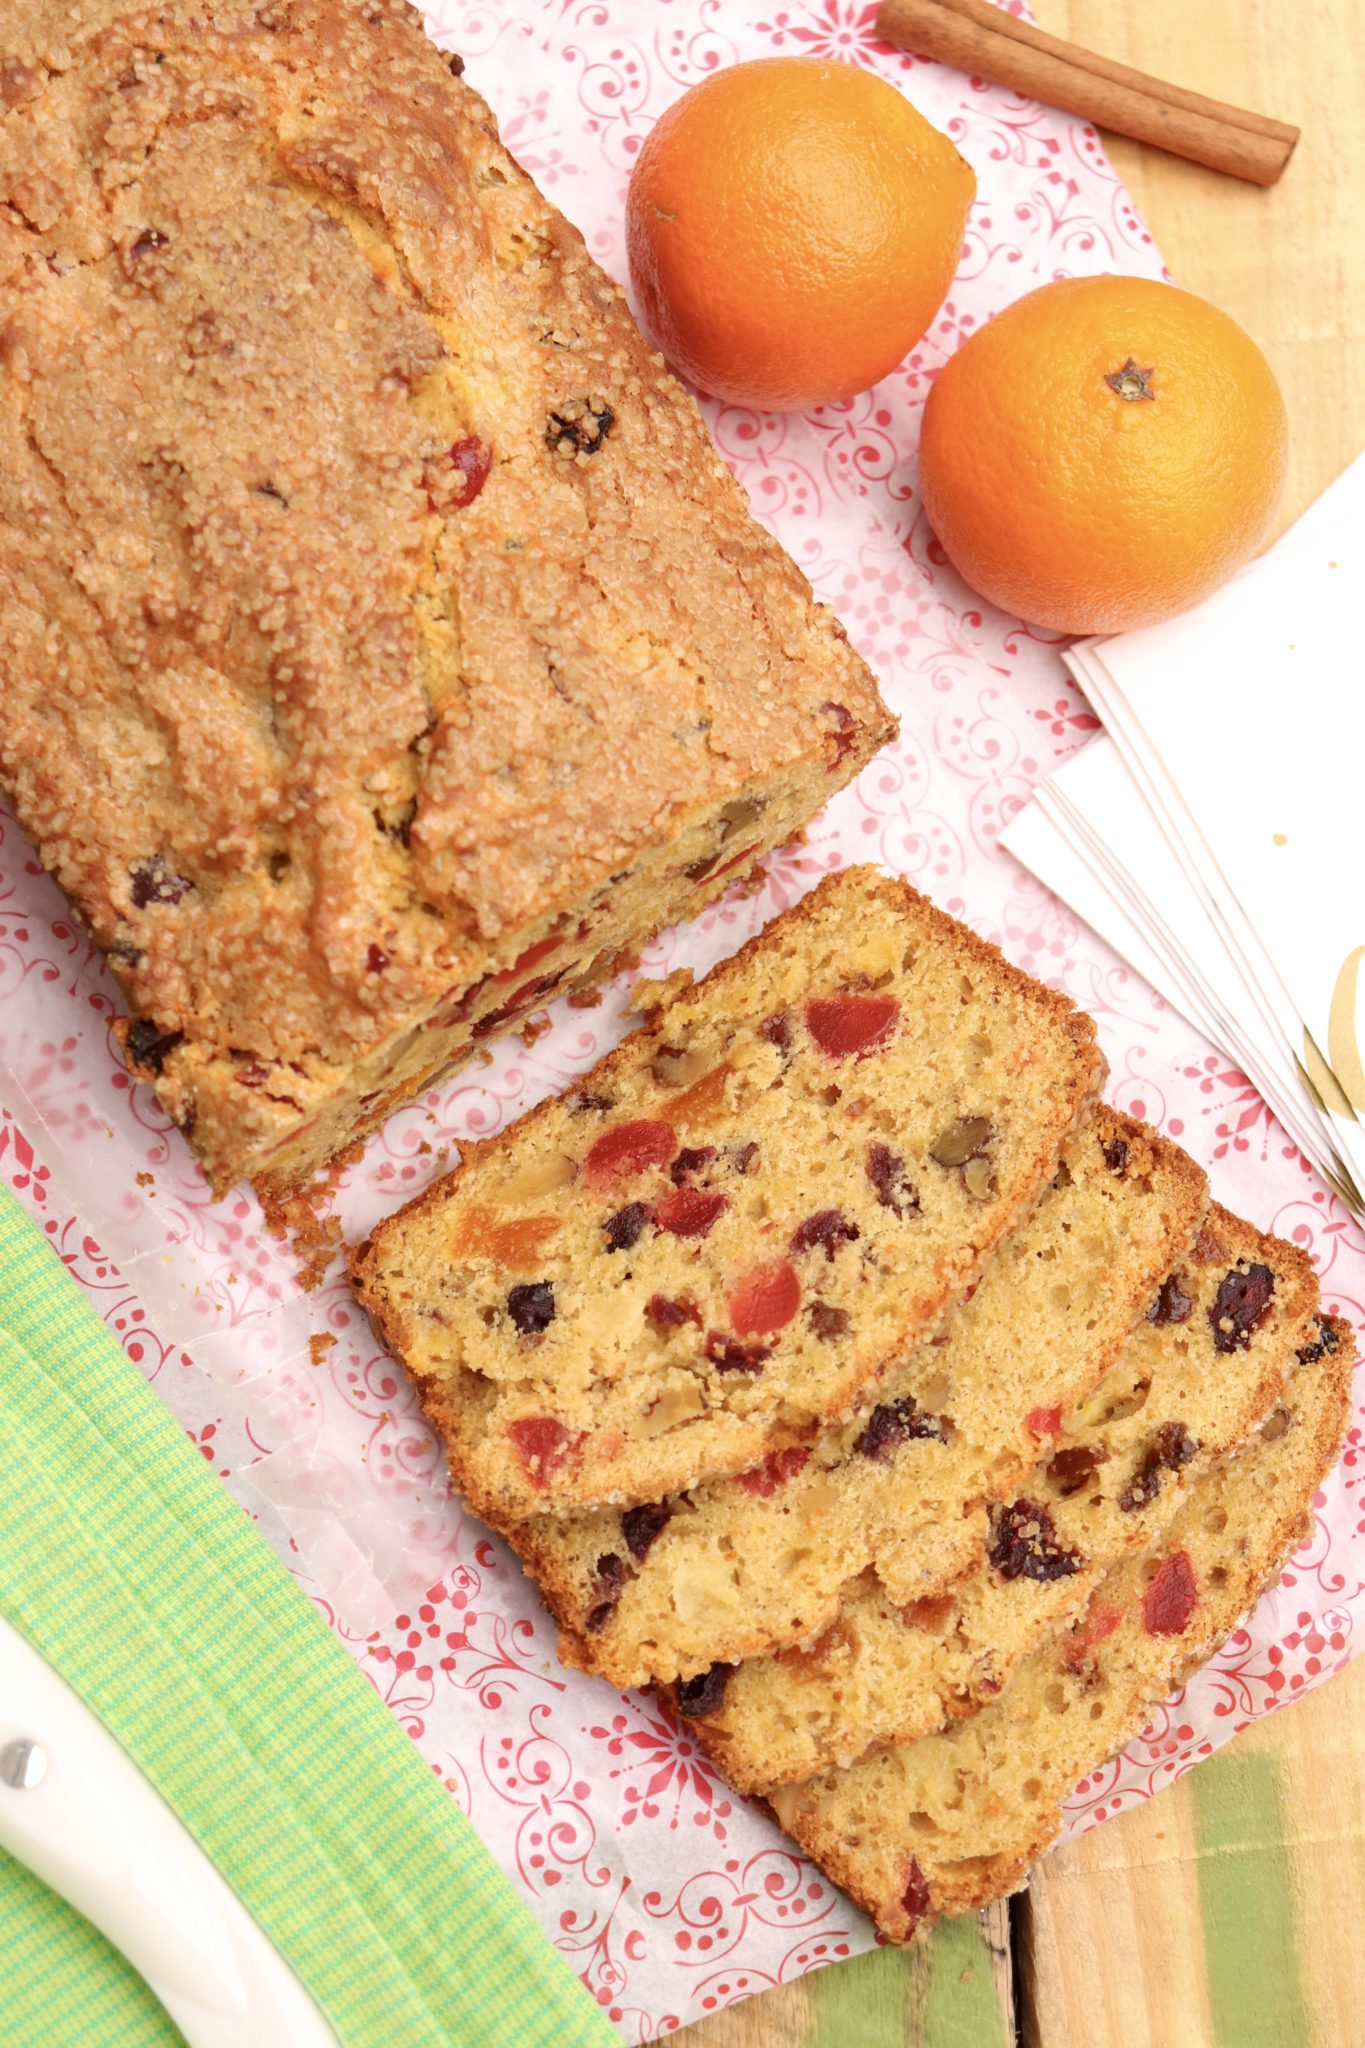 Fruitcake, reinvented: this quick and easy batter bread is packed with fruit and nuts but unlike traditional fruitcake is less sweet and more mildly spiced. Think shape and texture of a fruitier banana or zucchini nut bread.